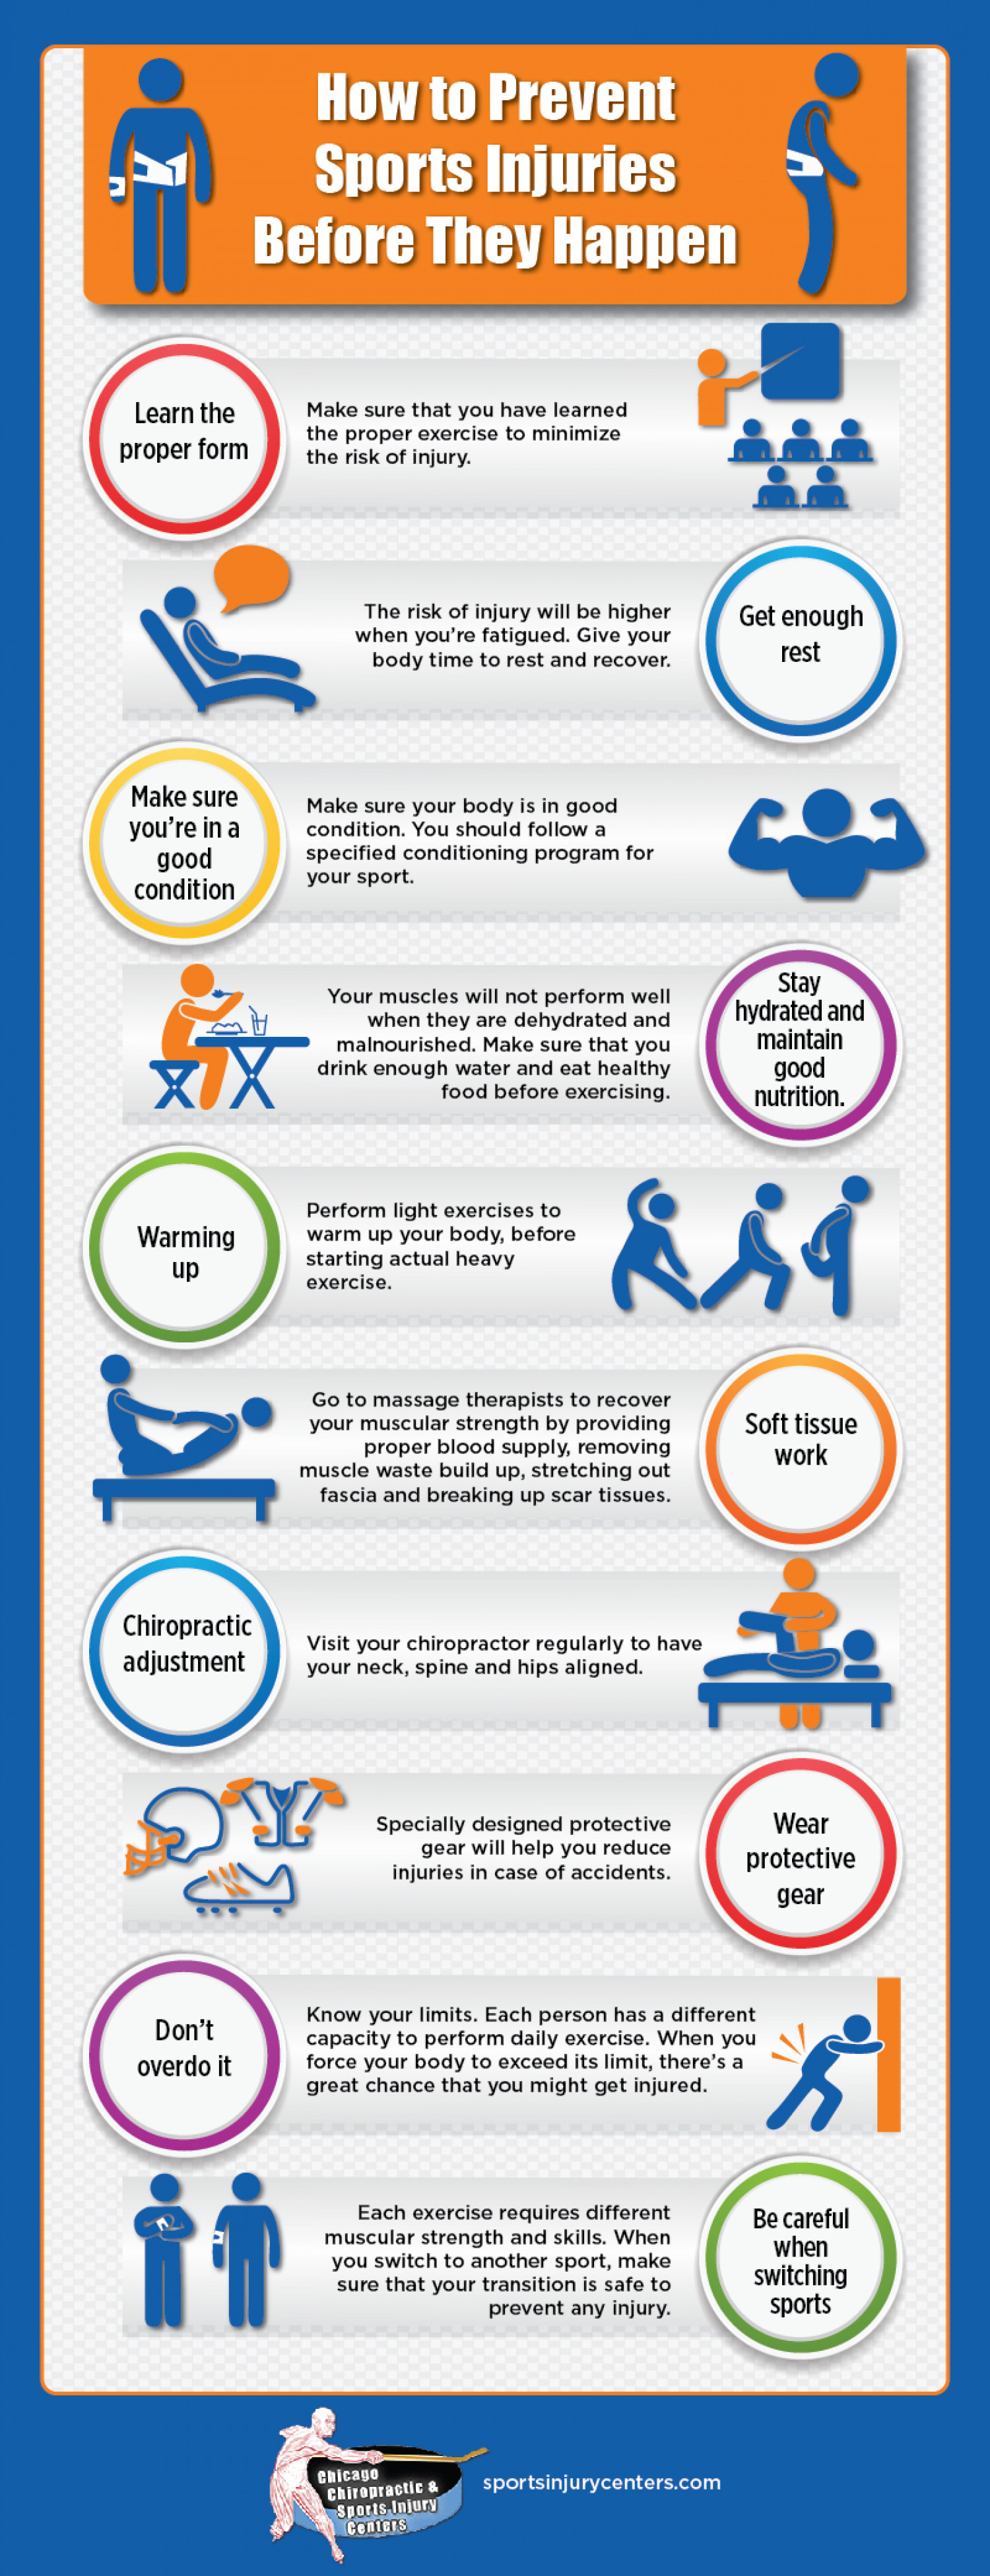 How To Prevent Sports Injuries Before They Happen Infographic